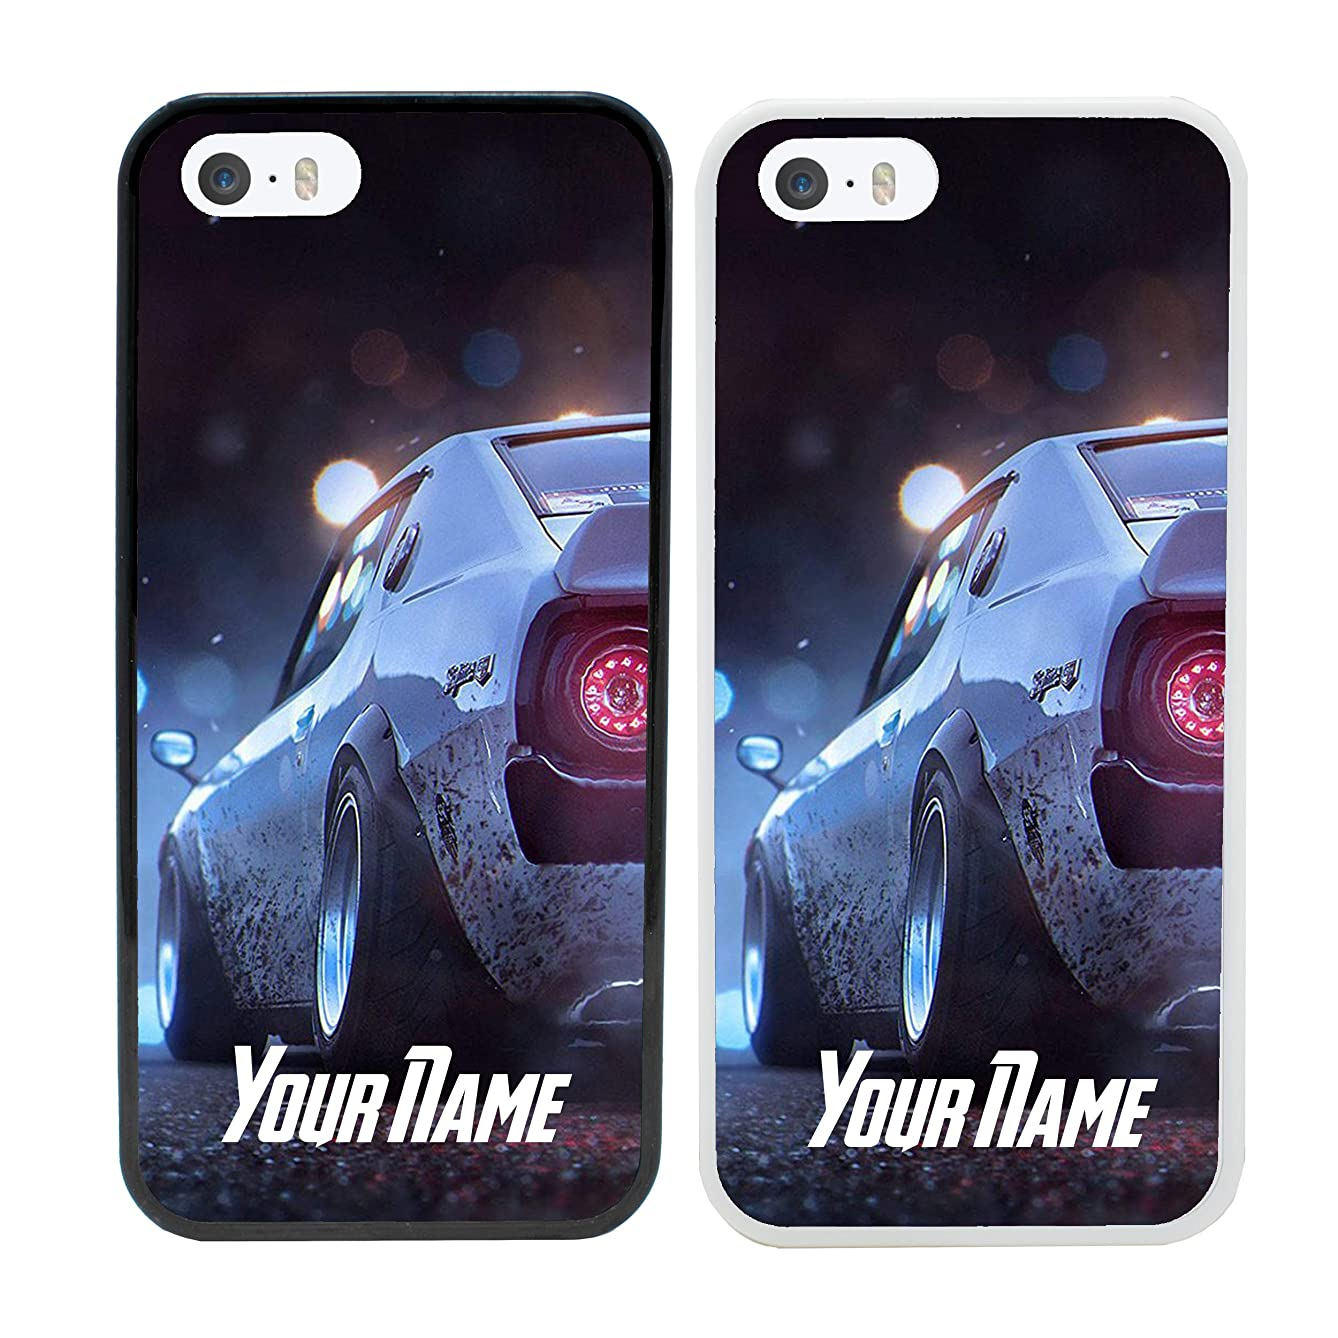 Boy Racer Personalised Phone Case for Apple iPhone 7 Smartphone Custom Cover Personal Your Name Bumper 4.7